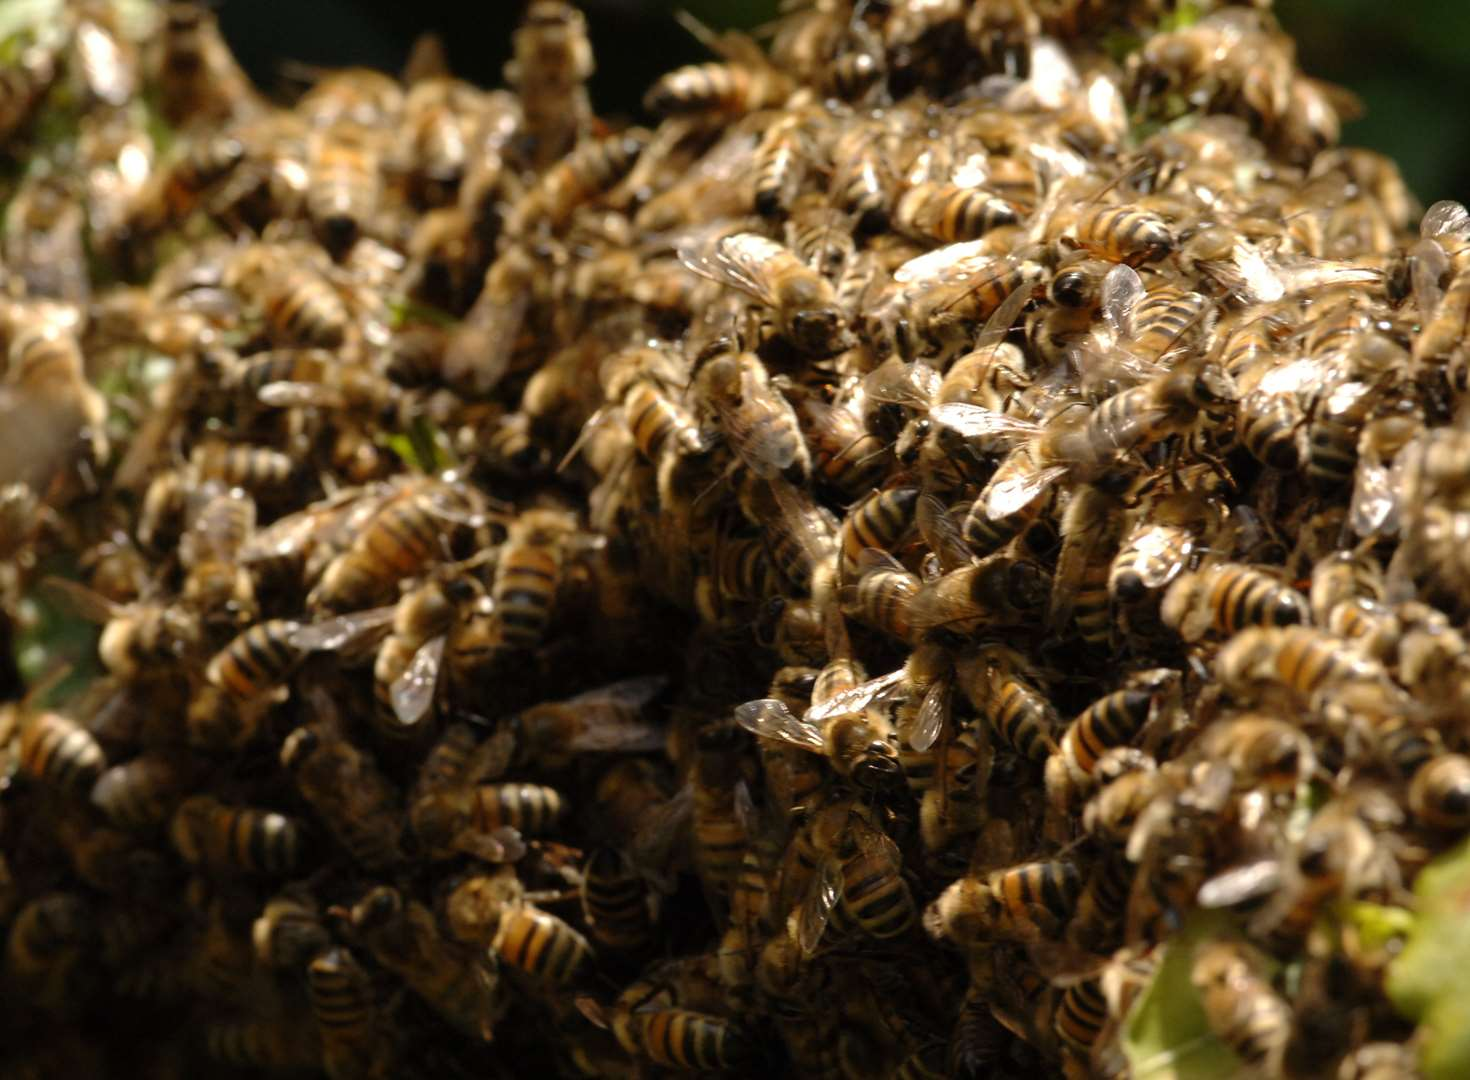 Swarm of bees leaves woman trapped in home